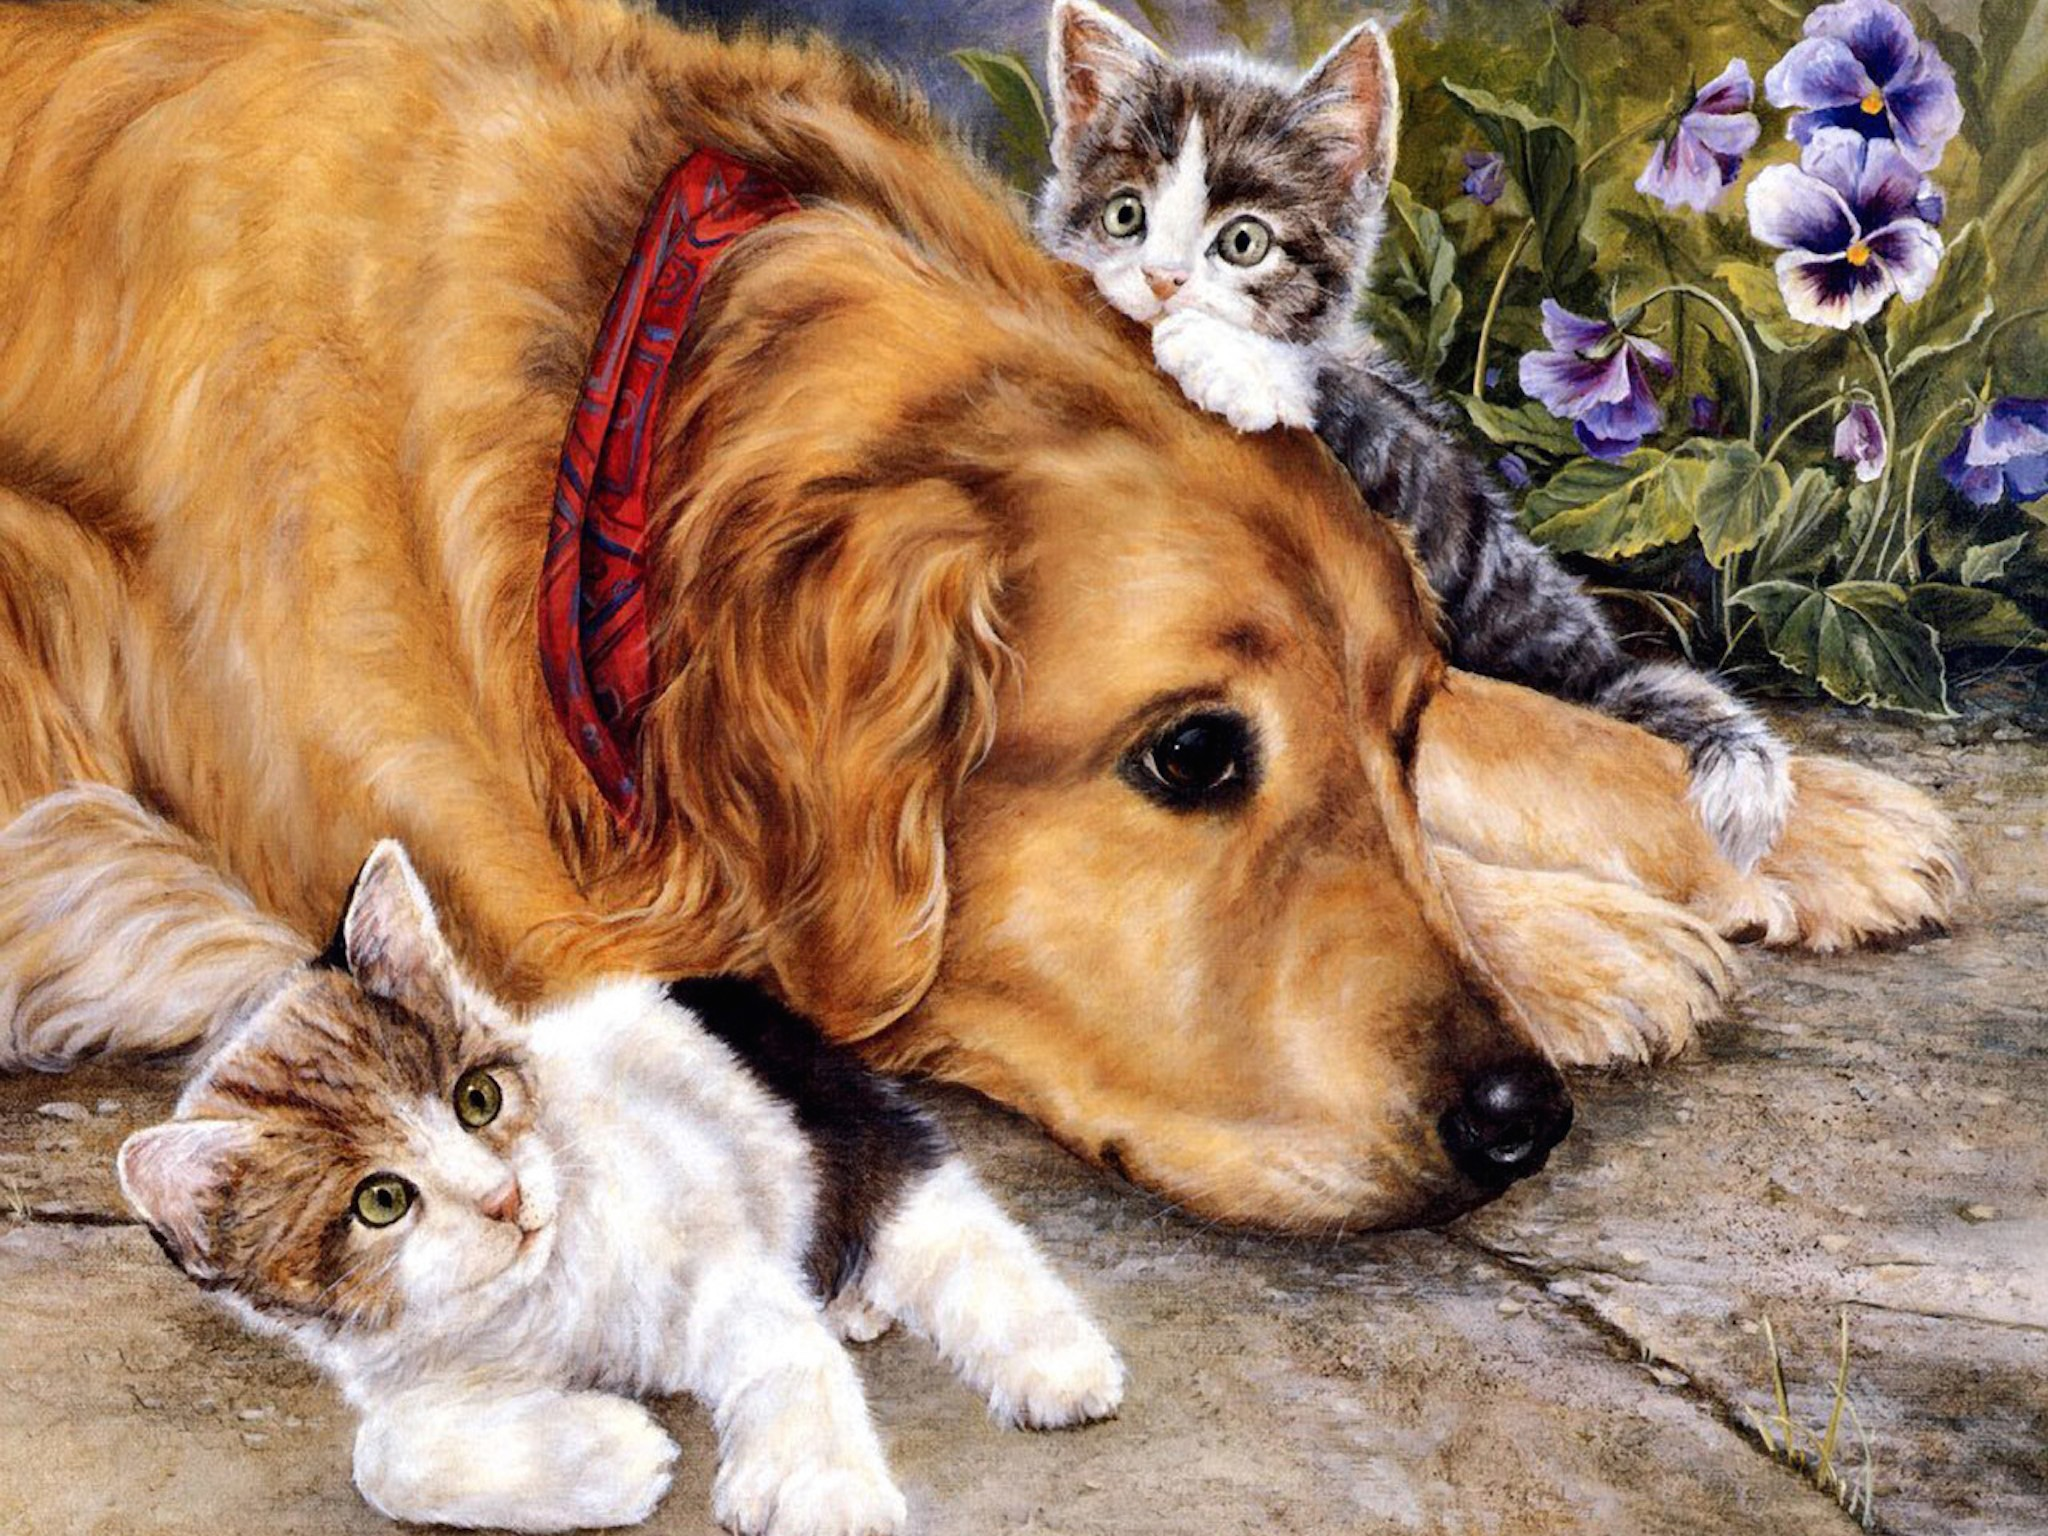 sweet dog with kittens painting wallpaper | free hd image